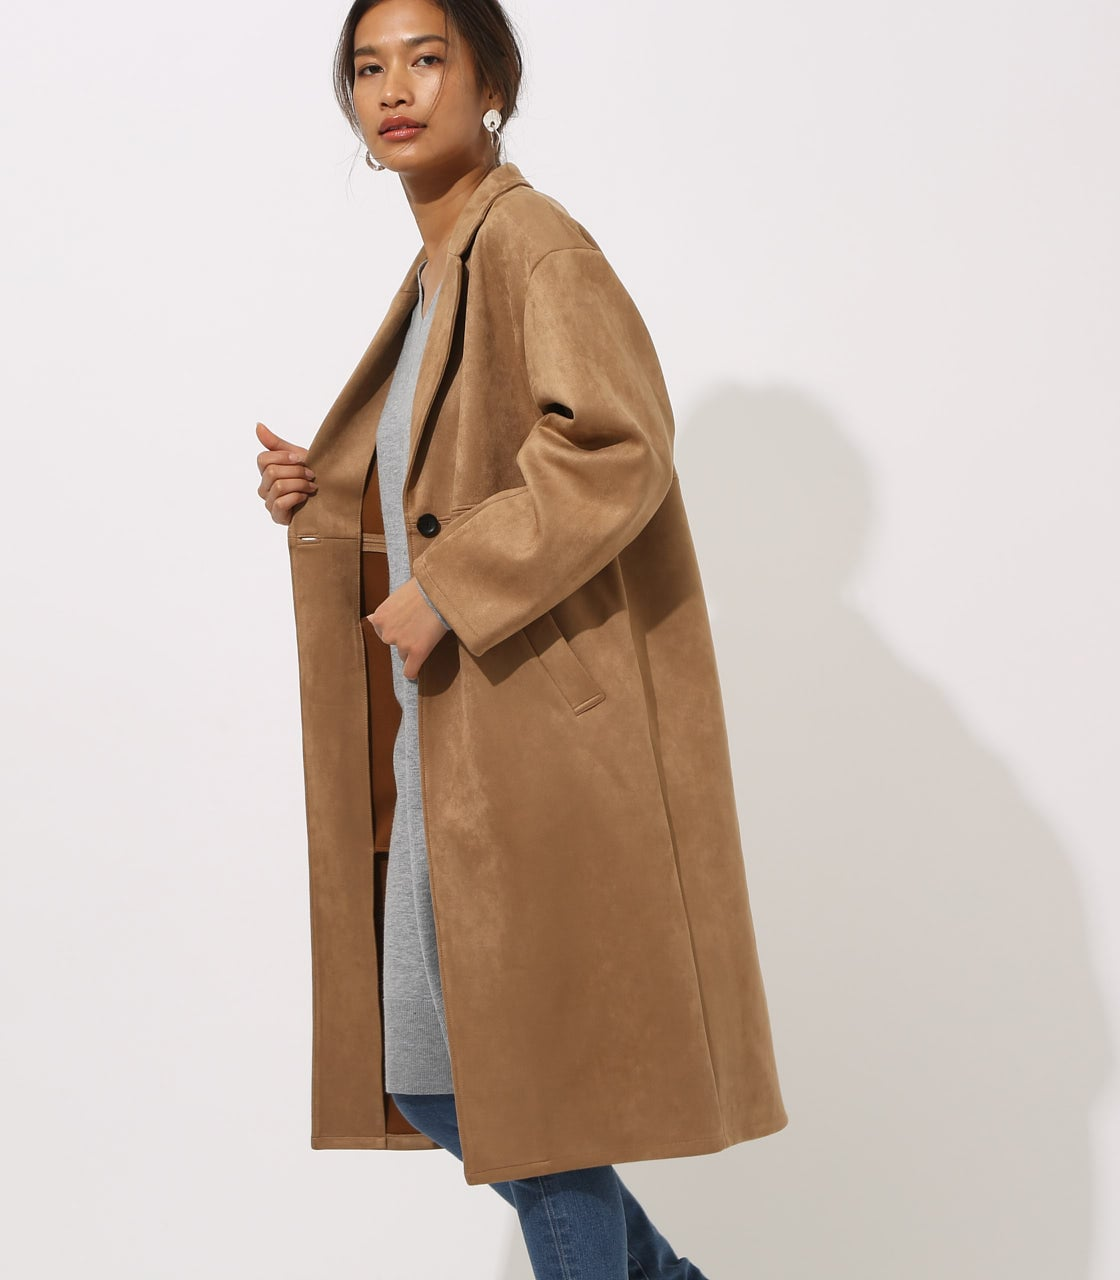 【AZUL BY MOUSSY】FAKE SUEDE CHESTER COAT 詳細画像 CAM 4